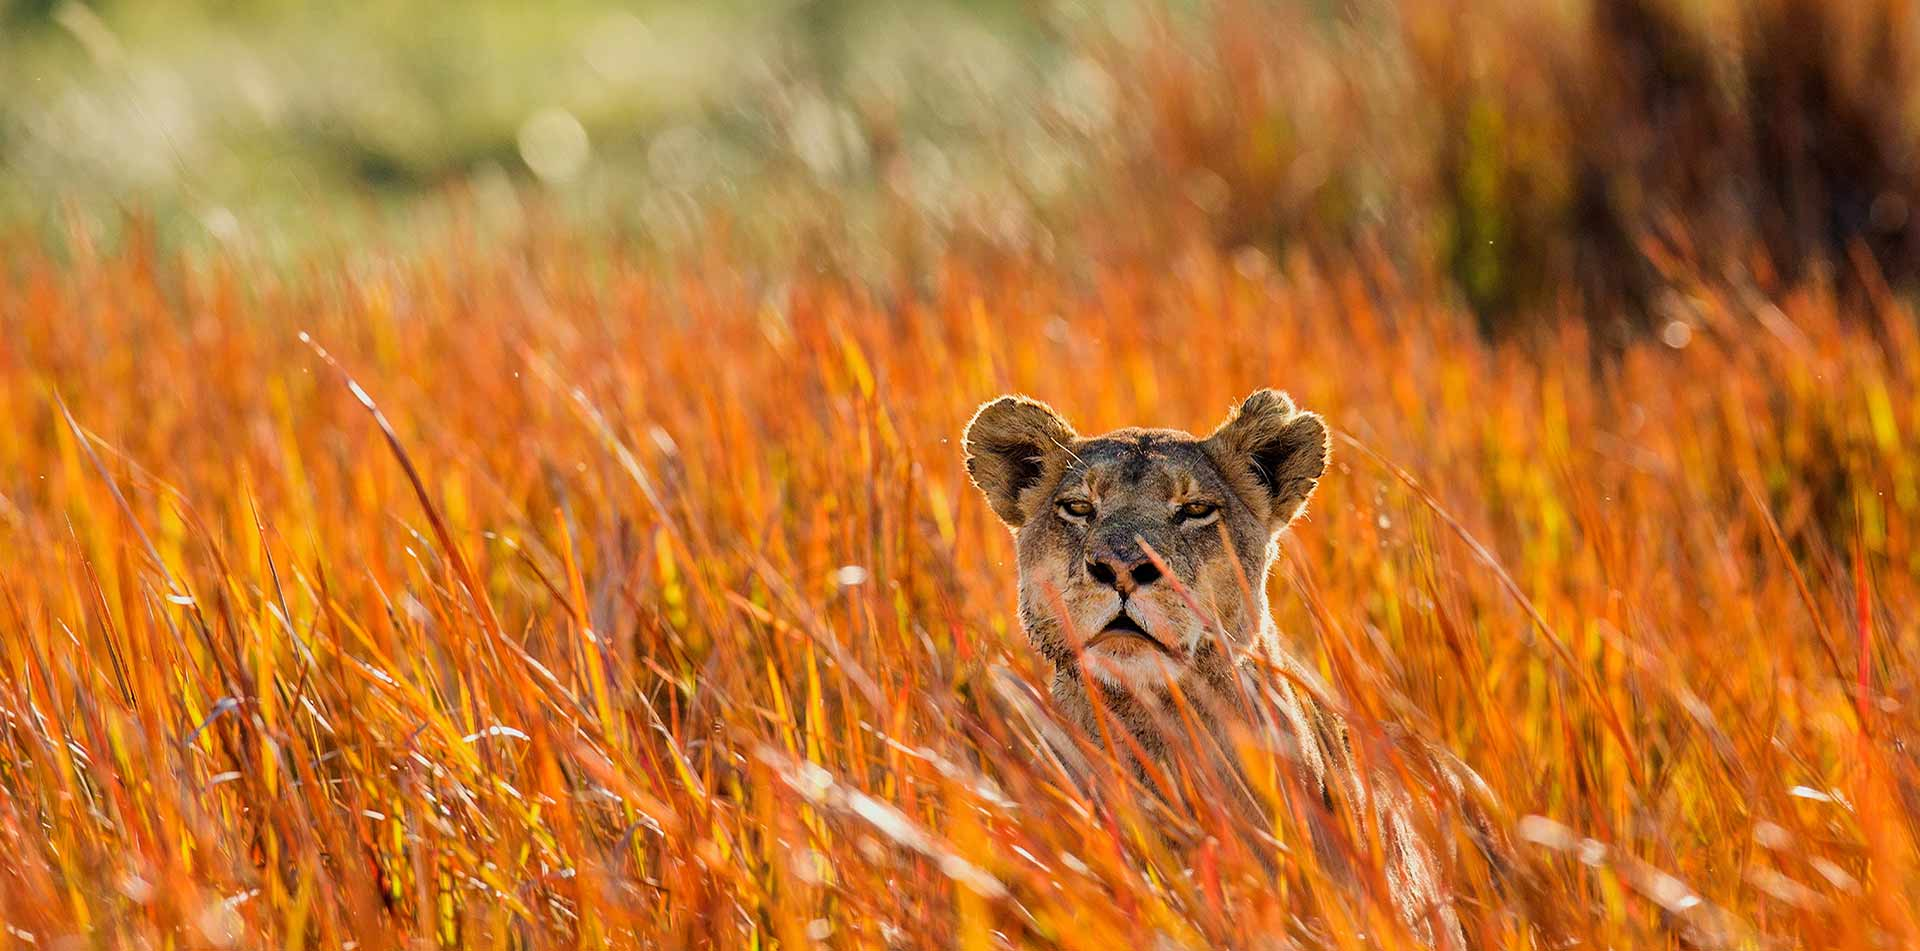 Africa beautiful wild lion hiding in tall dry grassy field safari nature - luxury vacation destinations